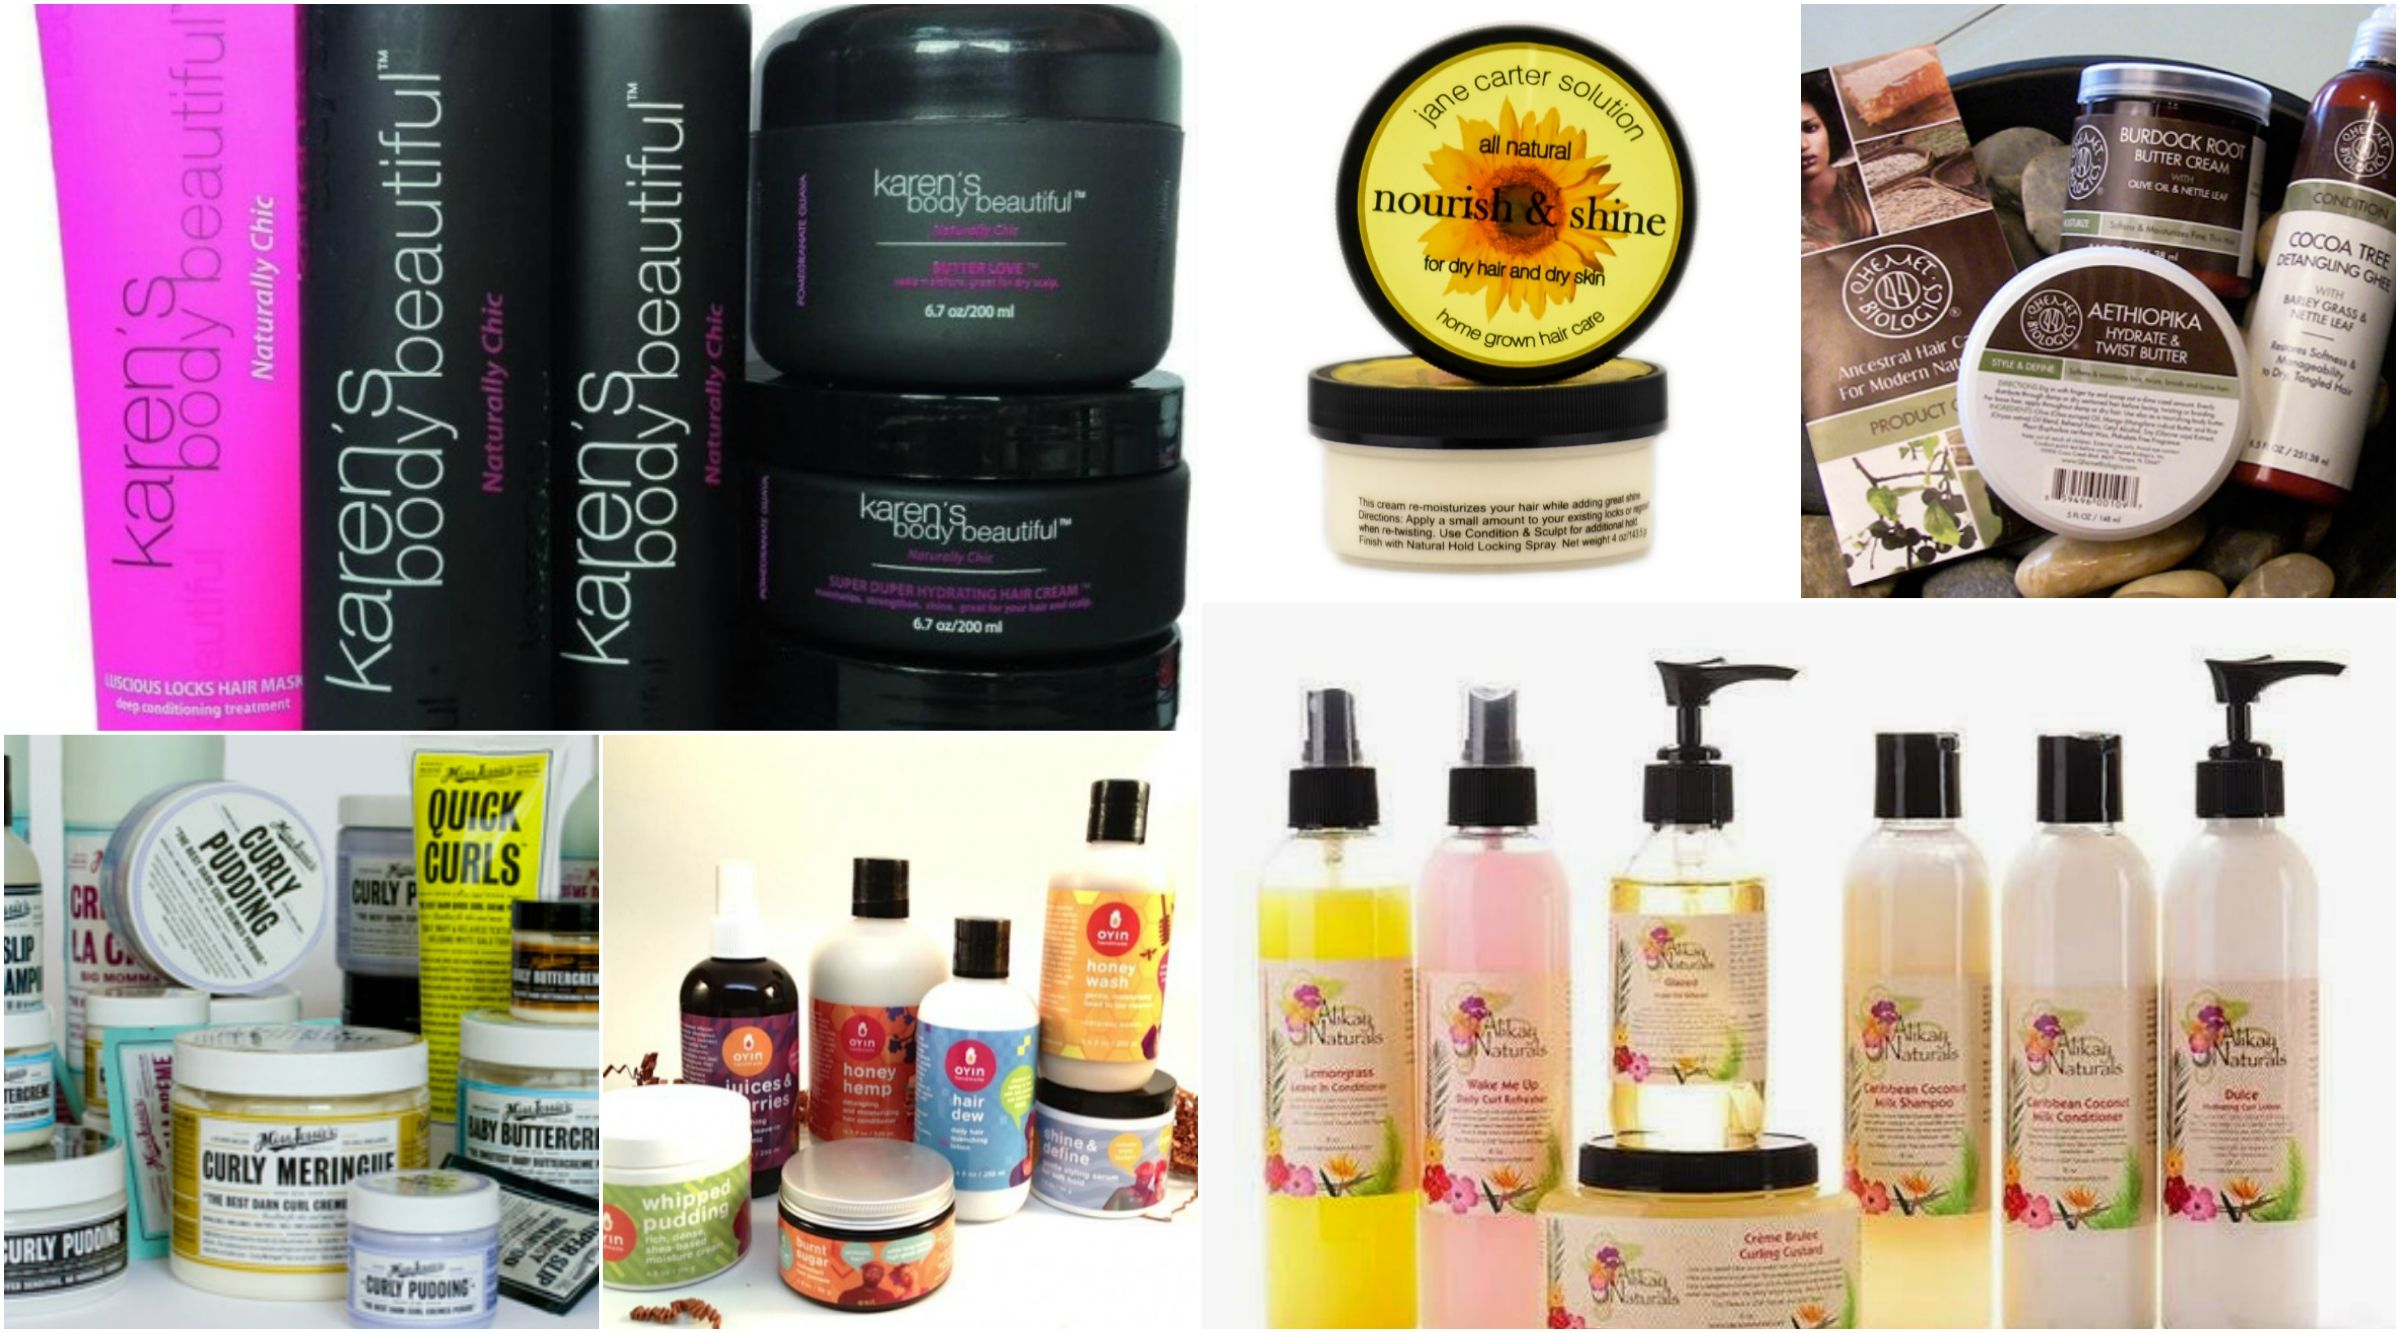 We know that many of our favorite natural black hair